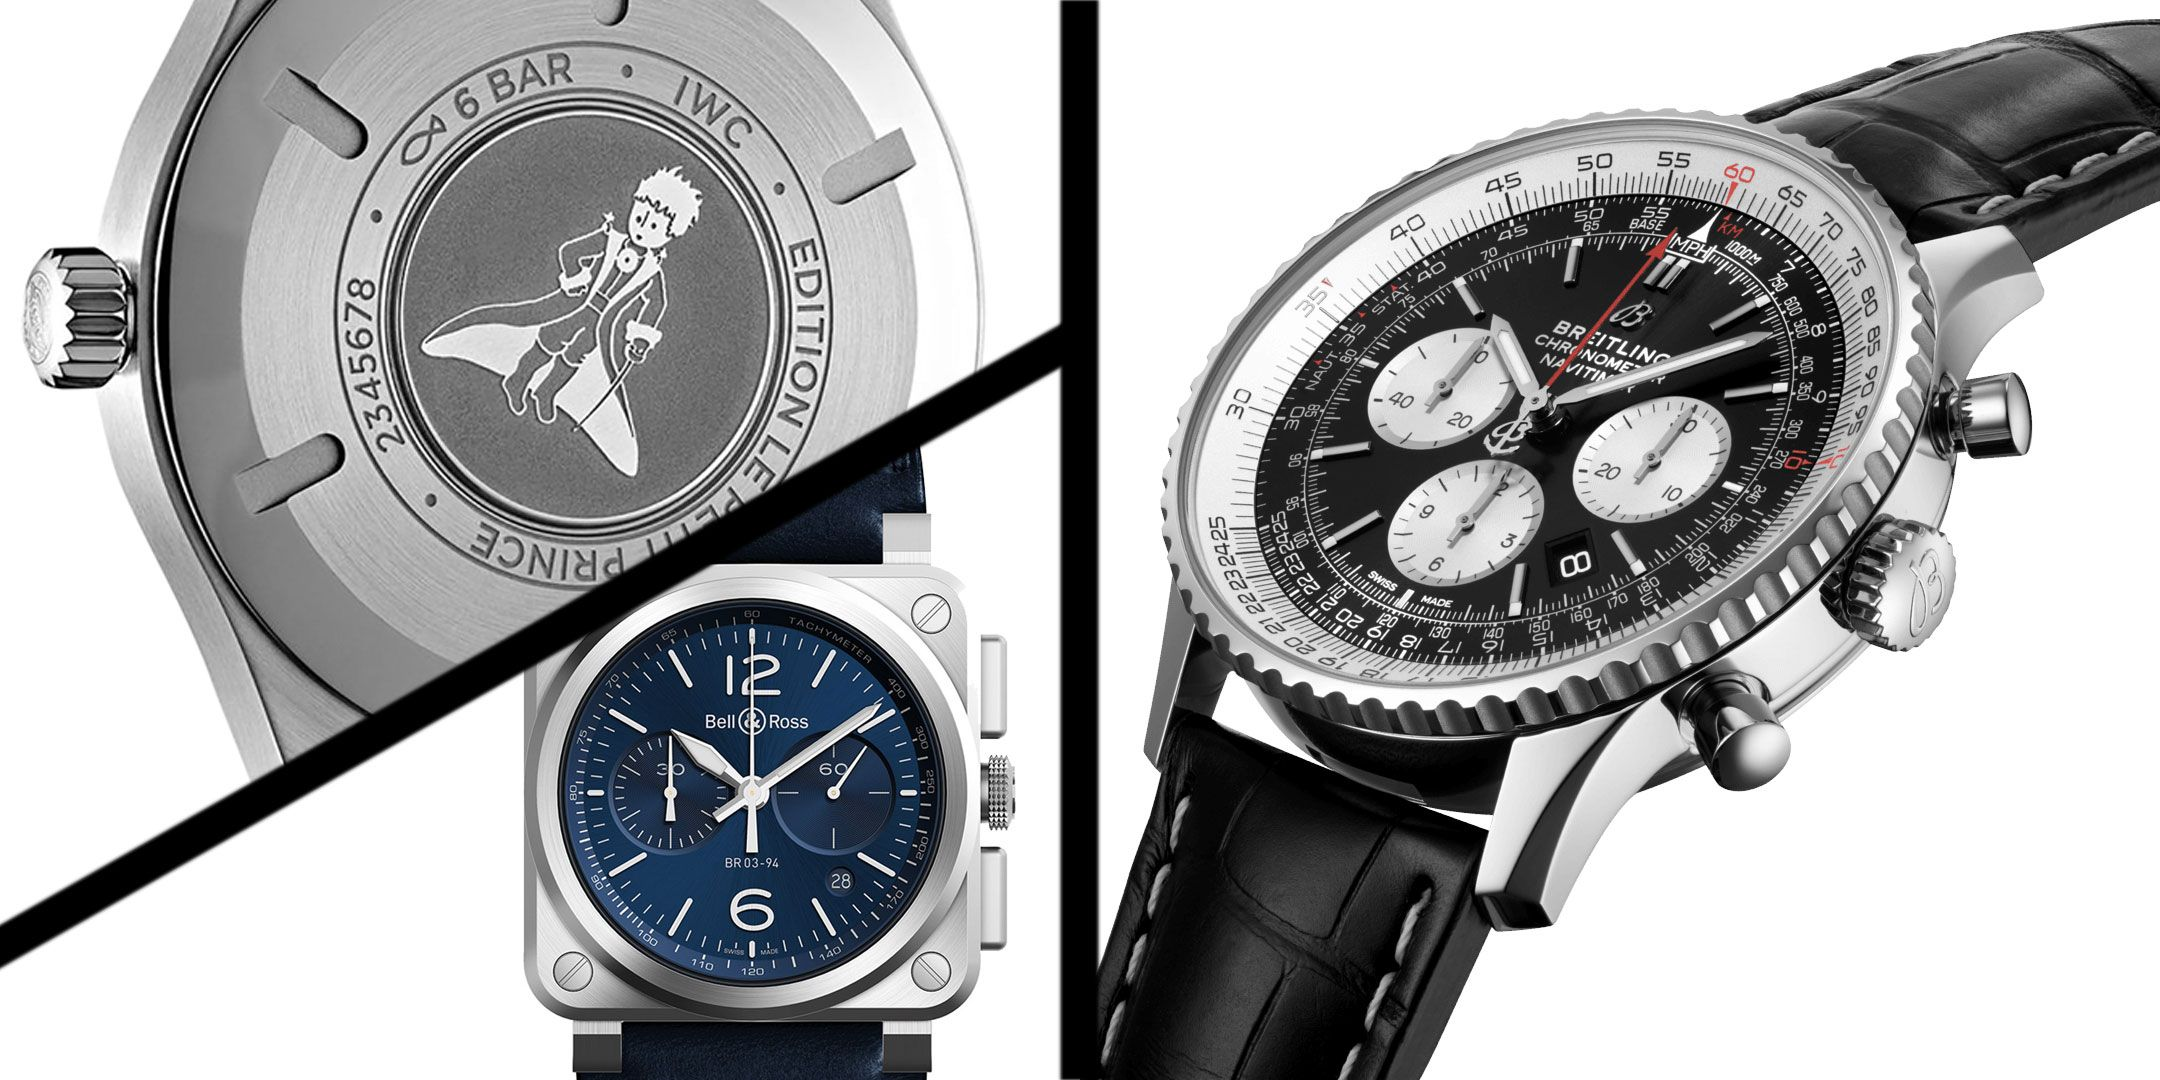 The Best Pilot Watch Brands On Earth (According To Esquire Editors)